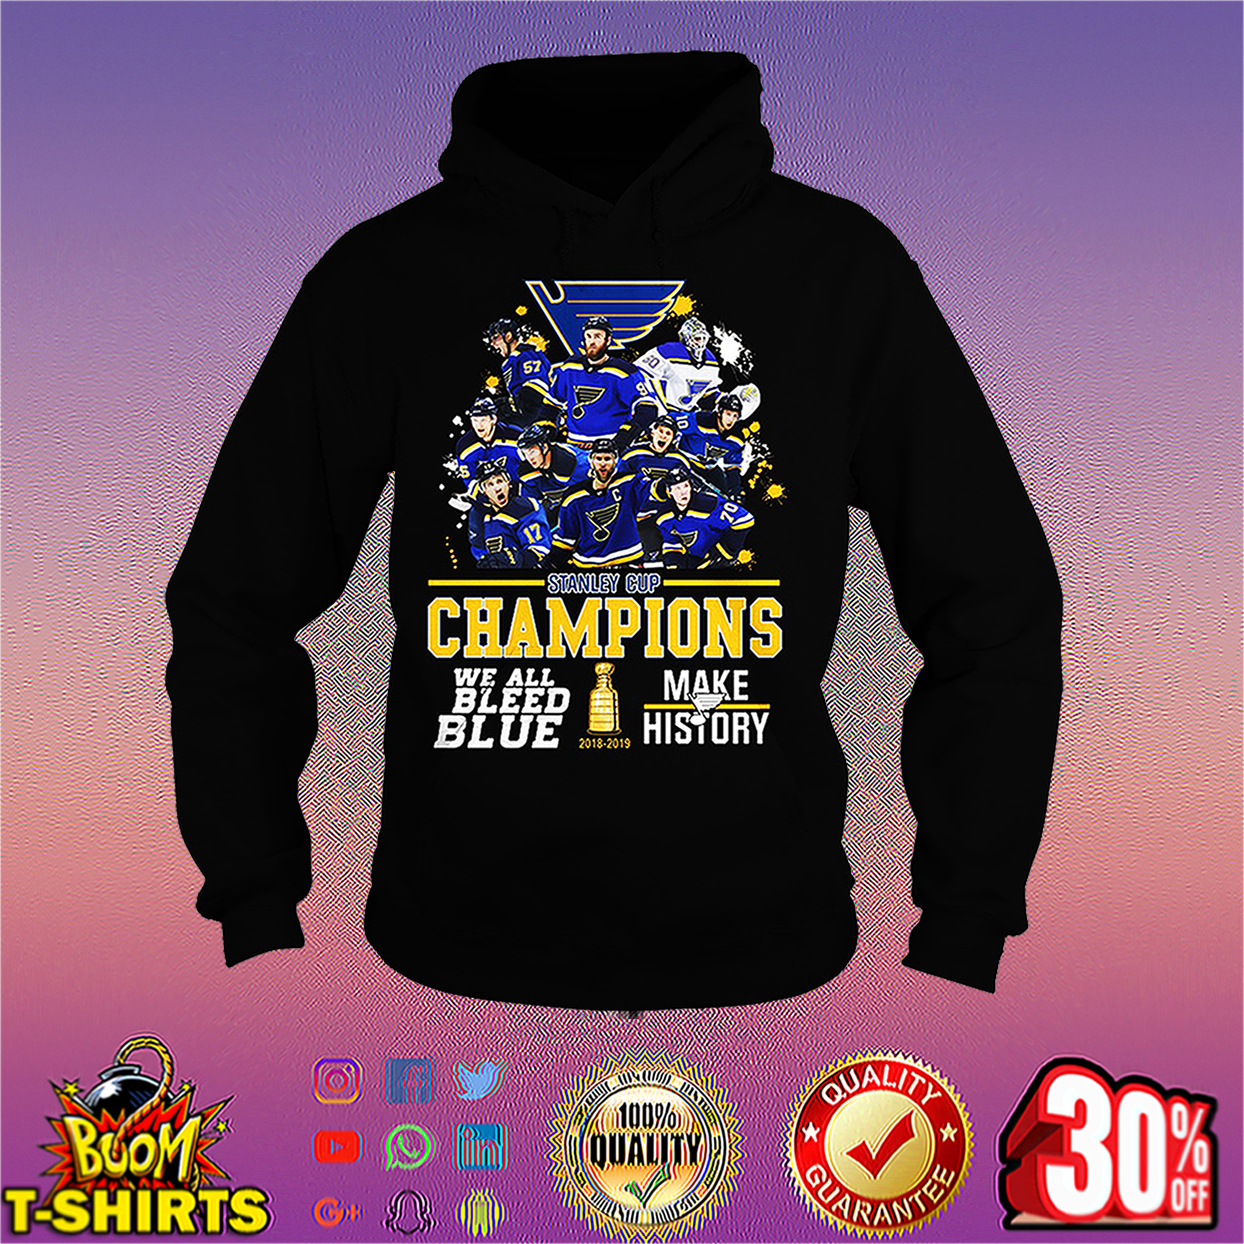 St. Louis Blues 2019 Stanley Cup Champions We Bleed Blue Make History hoodie